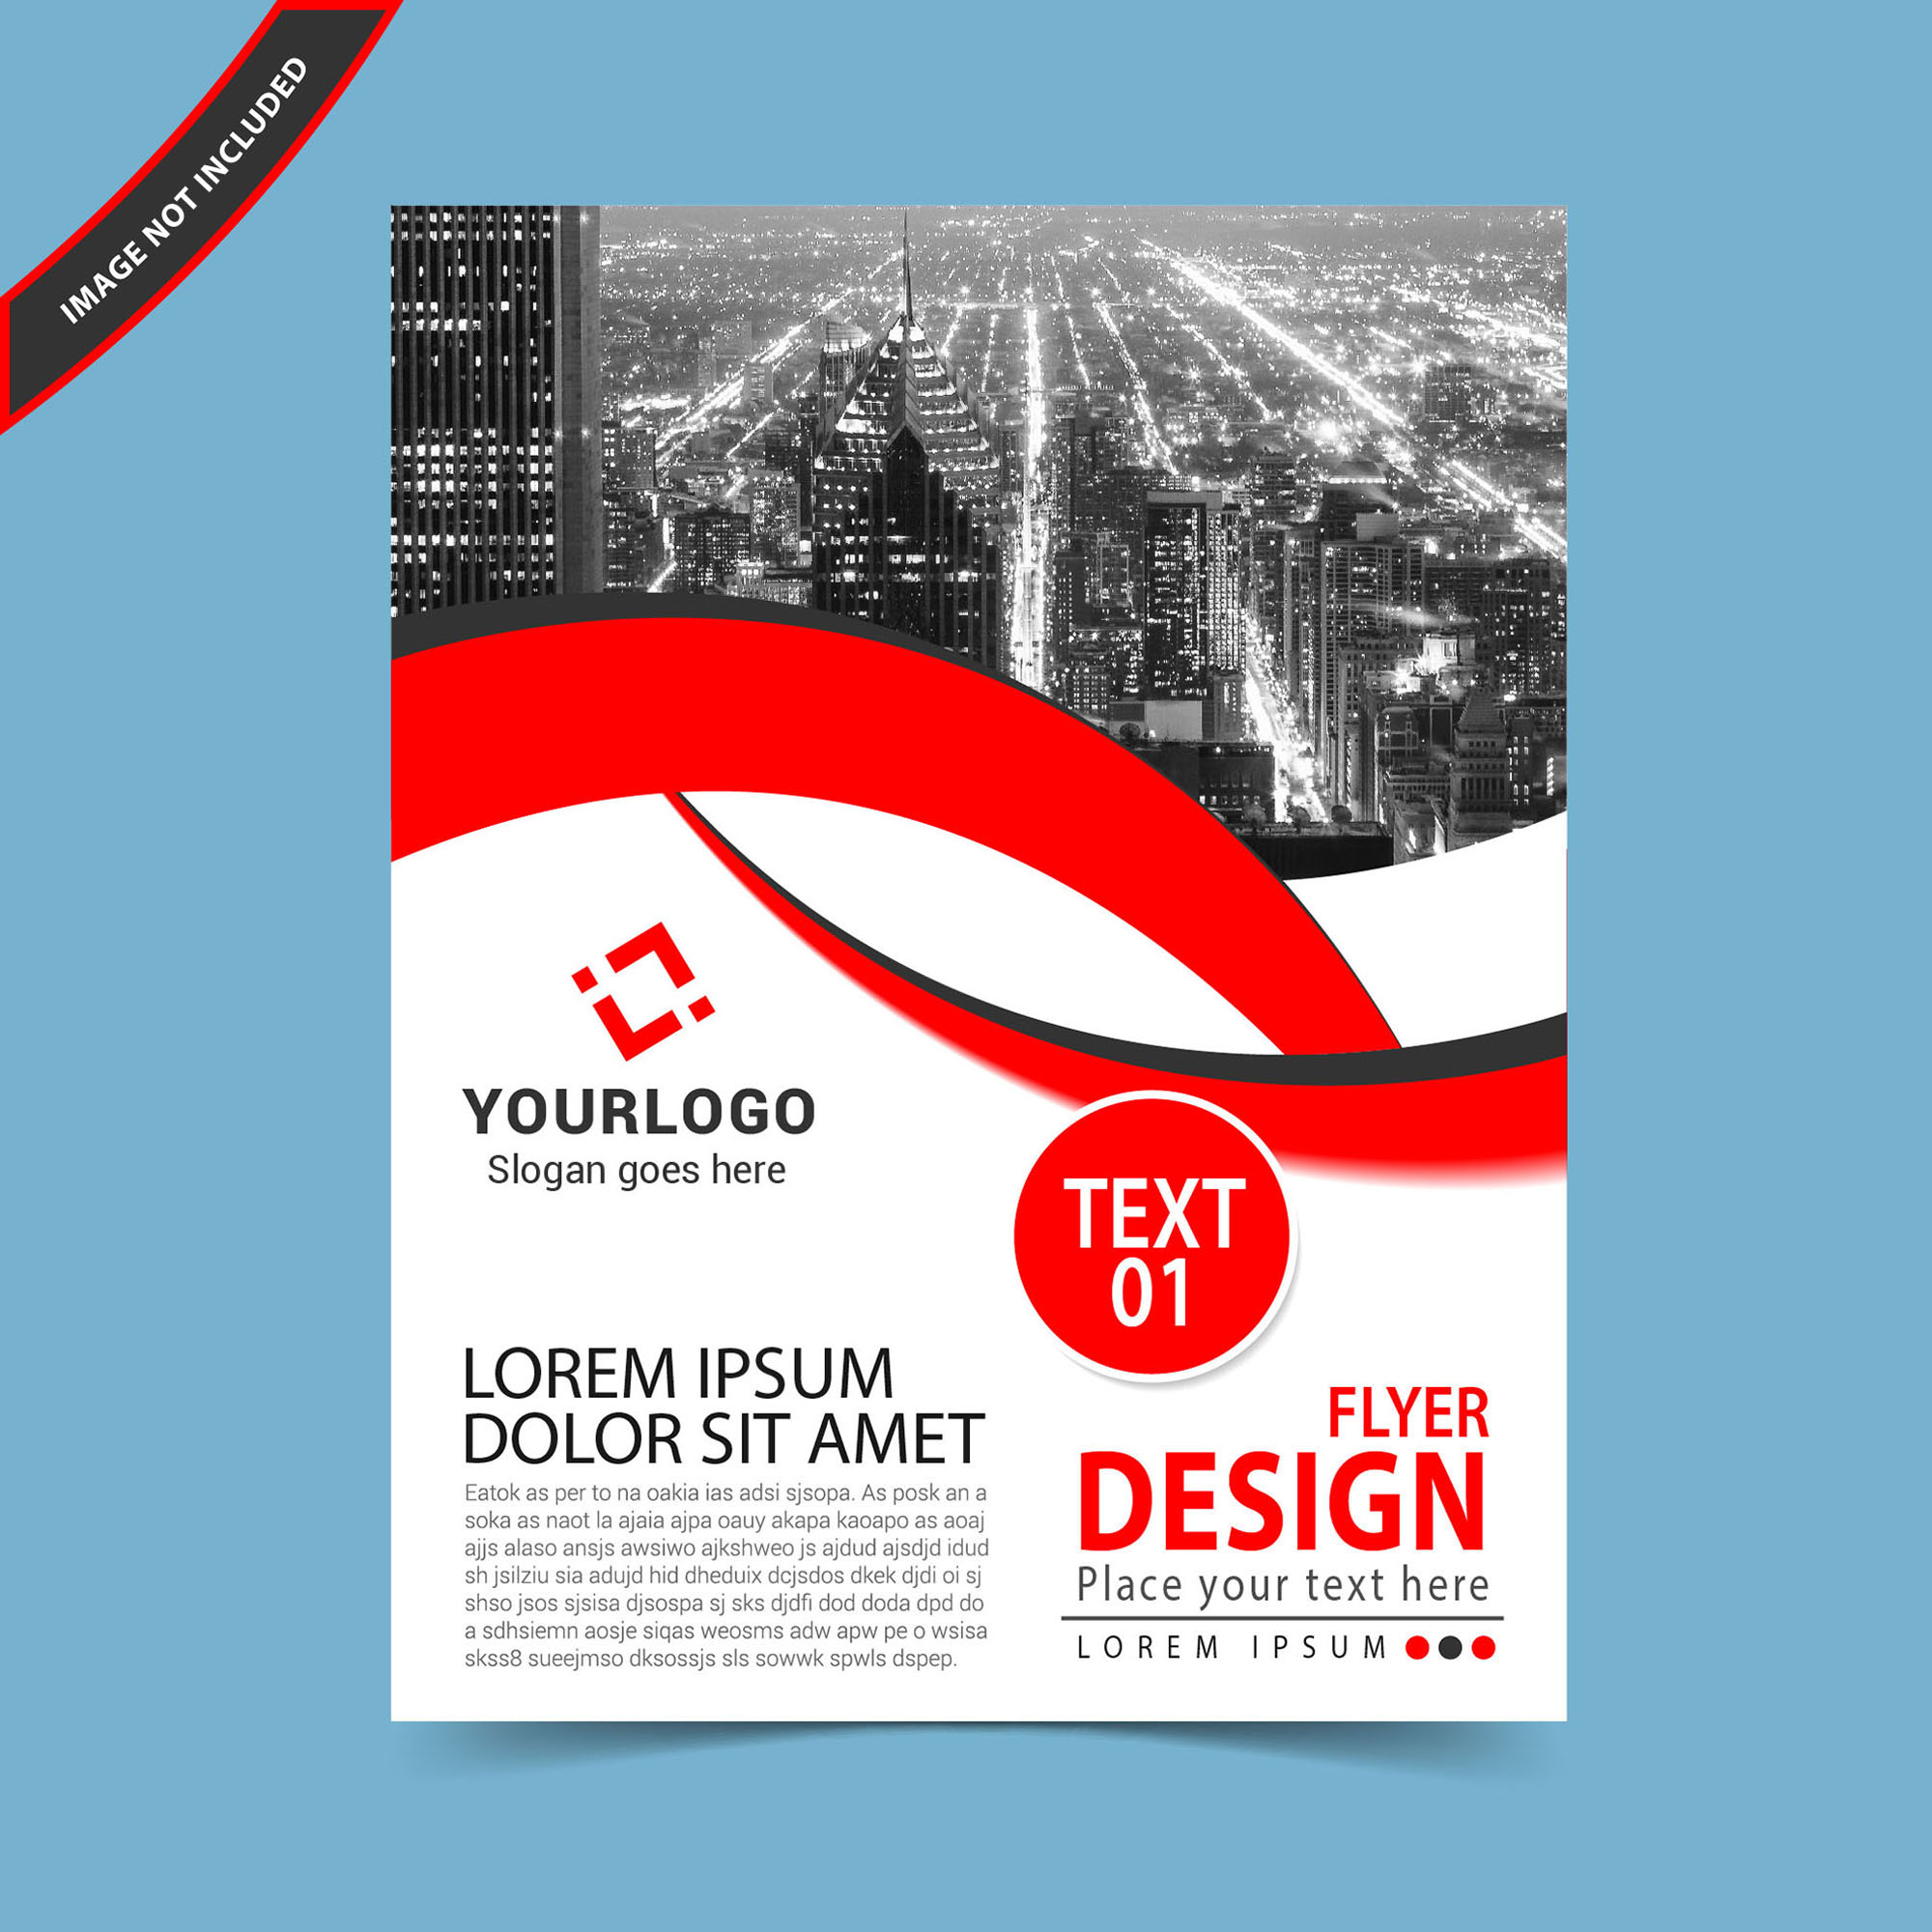 Flyer Design Template Vector Free Download - Wisxi.com